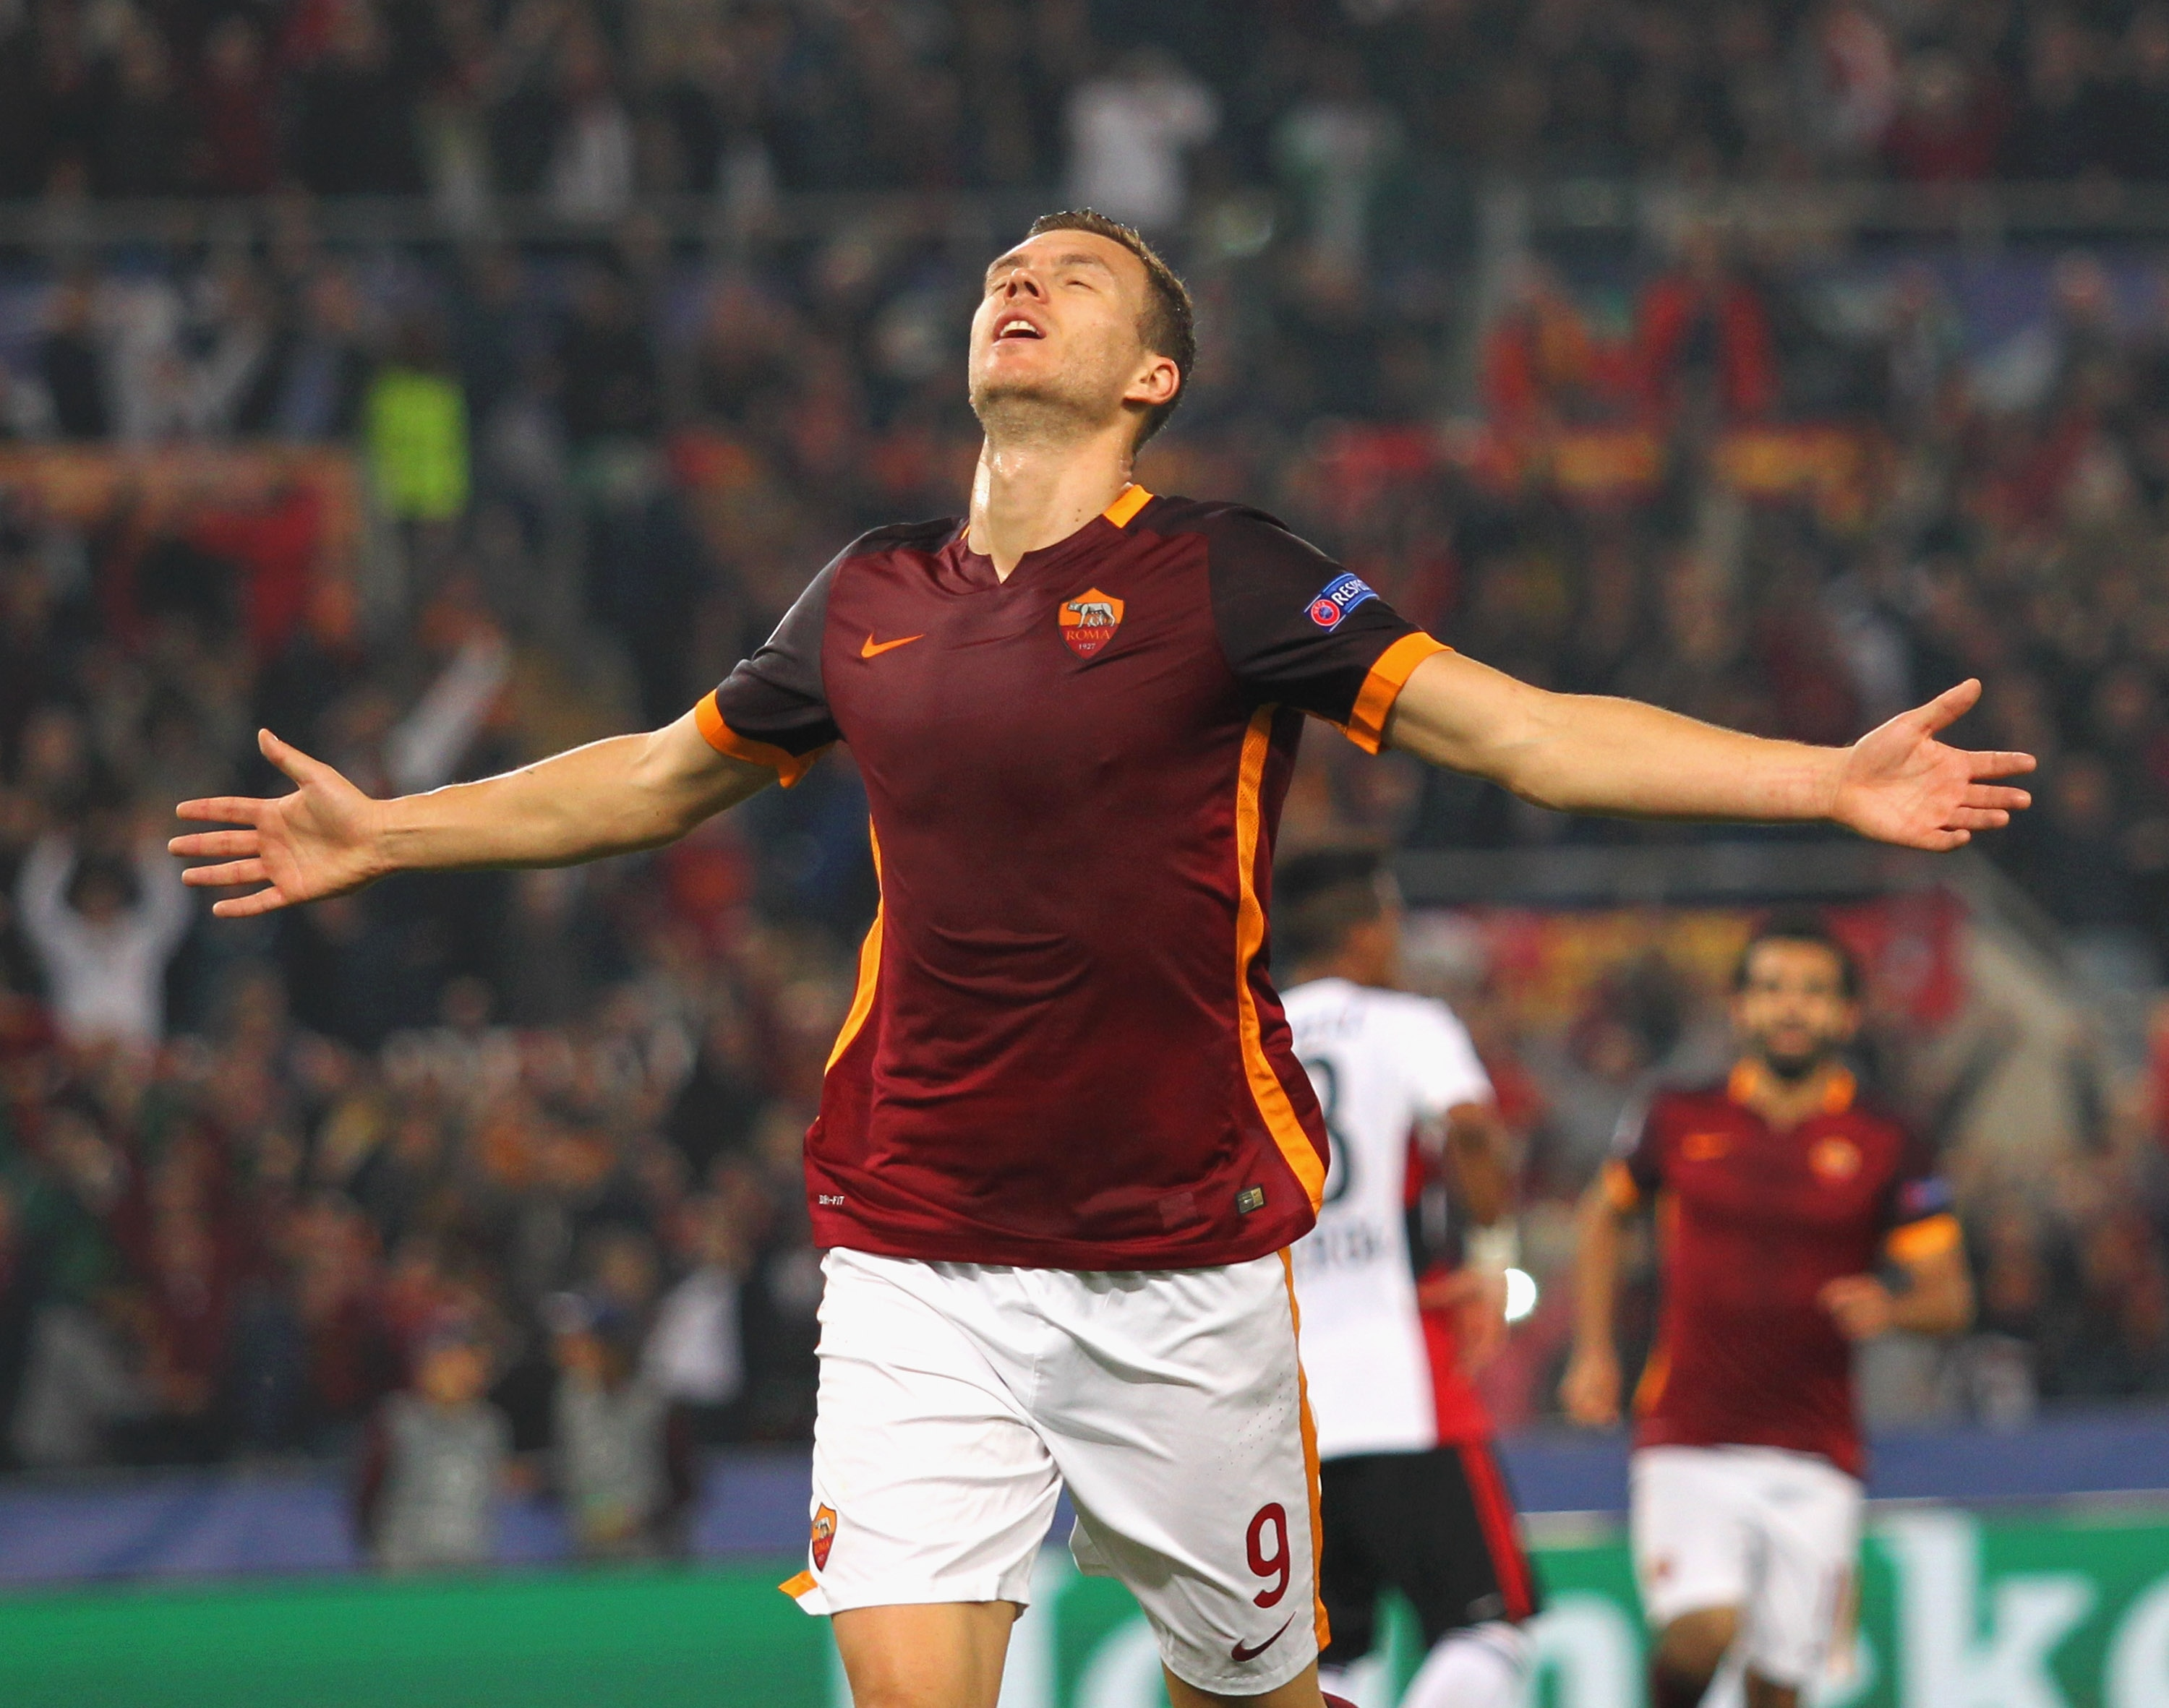 ROME, ITALY - NOVEMBER 04: Edin Dzeko of AS Roma celebrates after scoring the team's second goal during the UEFA Champions League Group E match between AS Roma and Bayer 04 Leverkusen at Olimpico Stadium on November 4, 2015 in Rome, Italy. (Photo by Paolo Bruno/Getty Images)